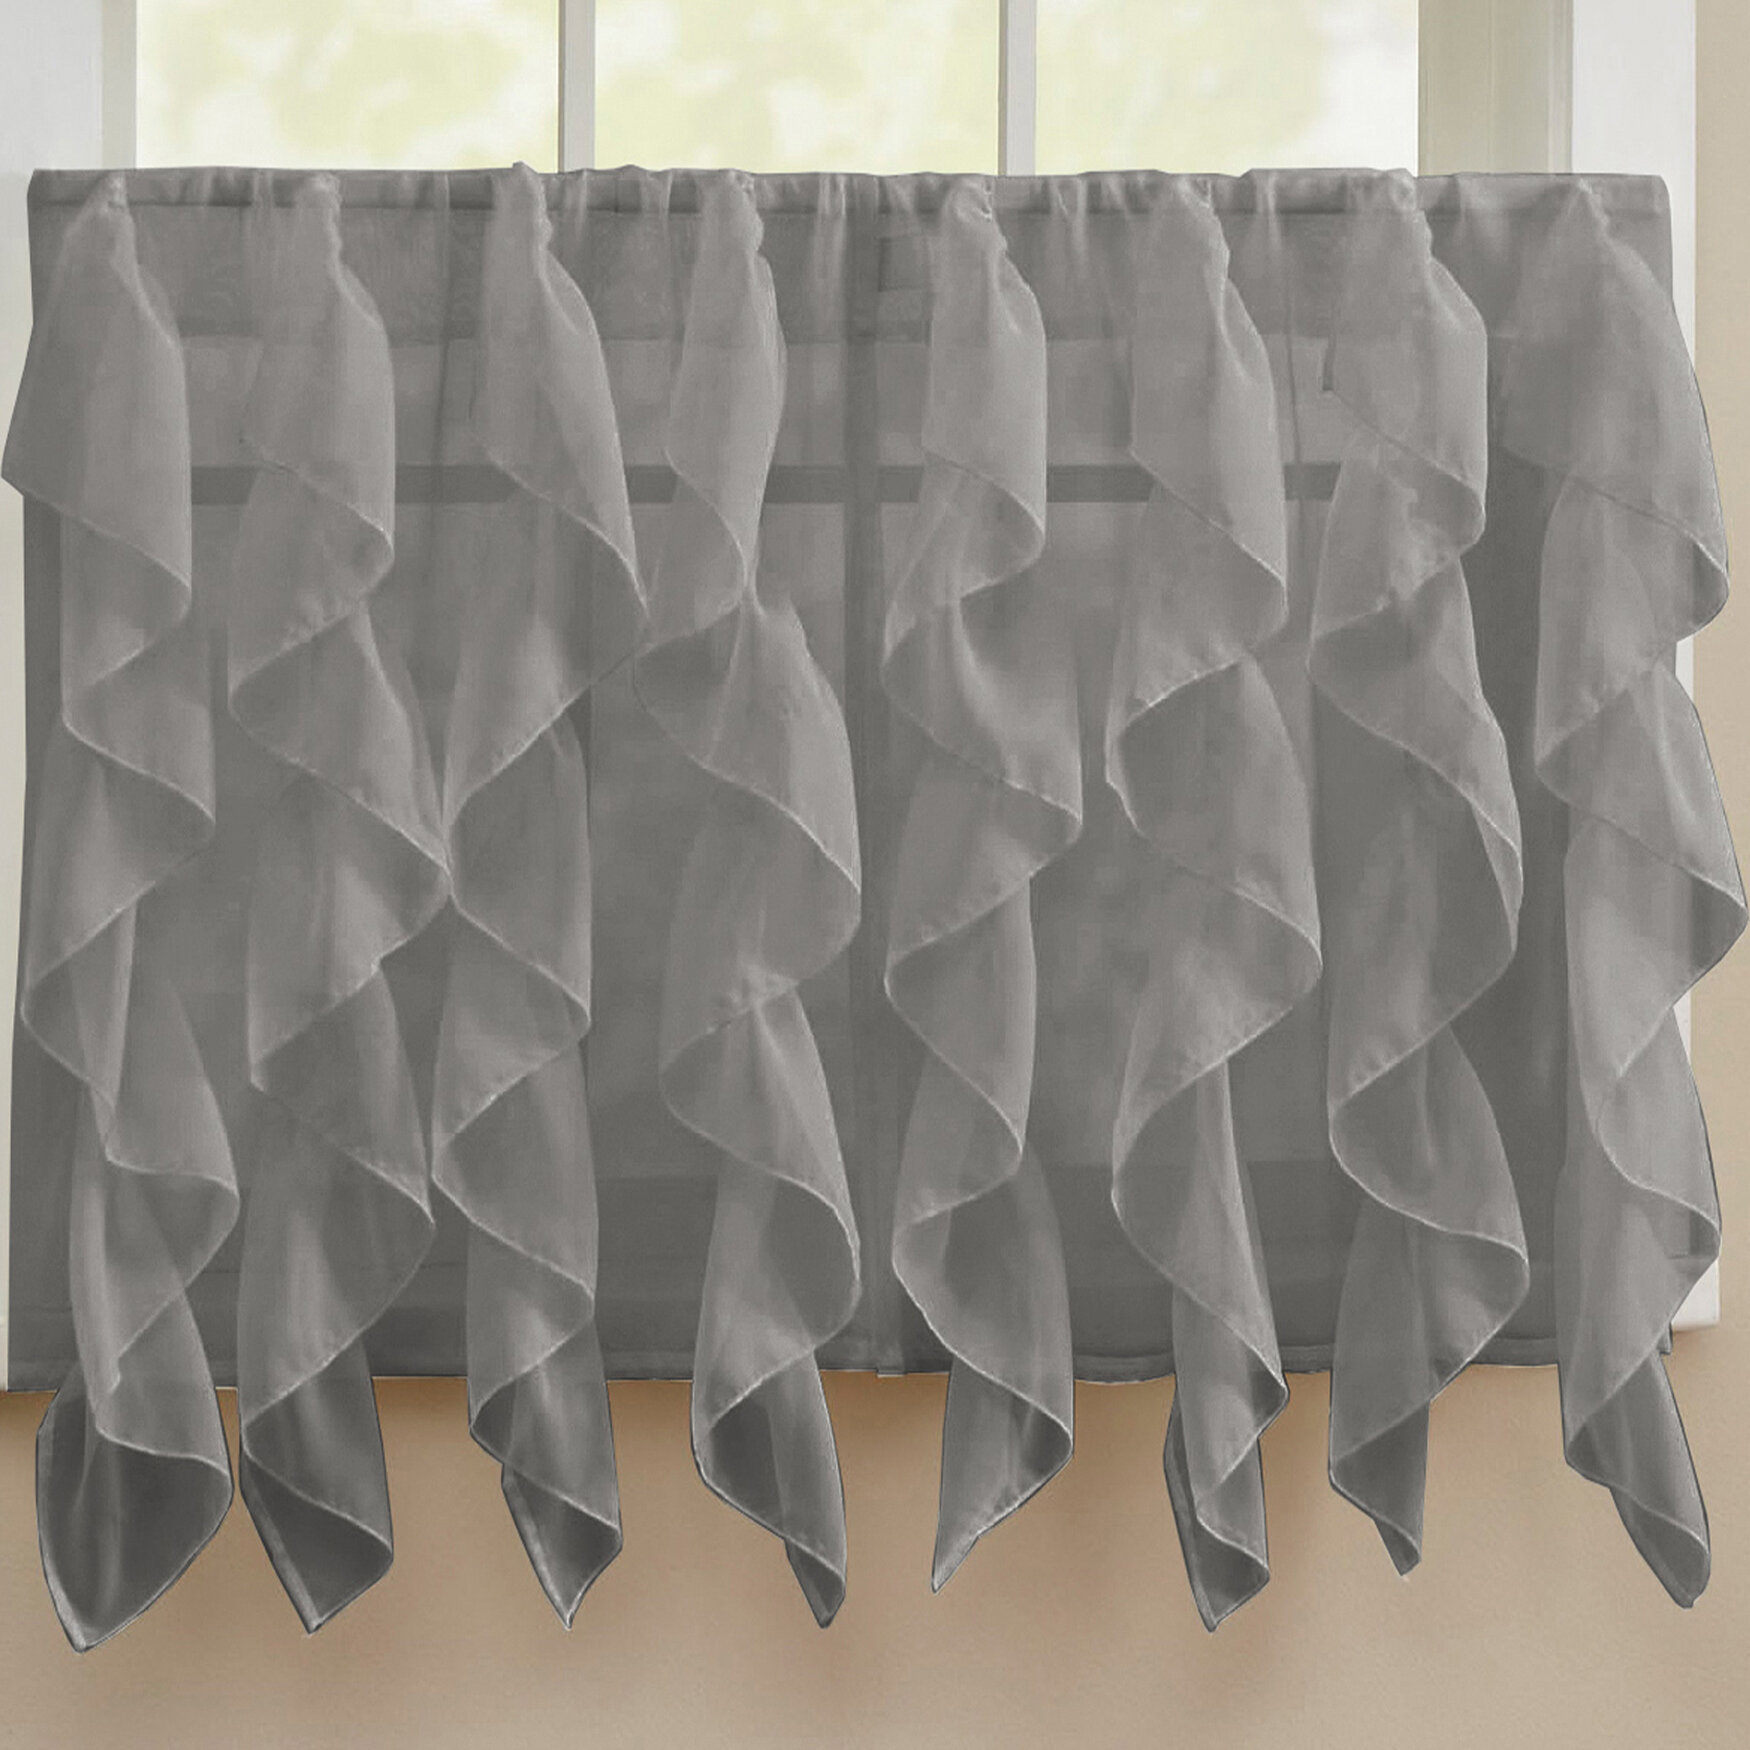 Fulgham Chic Sheer Voile Vertical Cafe Curtain With Chic Sheer Voile Vertical Ruffled Window Curtain Tiers (View 14 of 20)